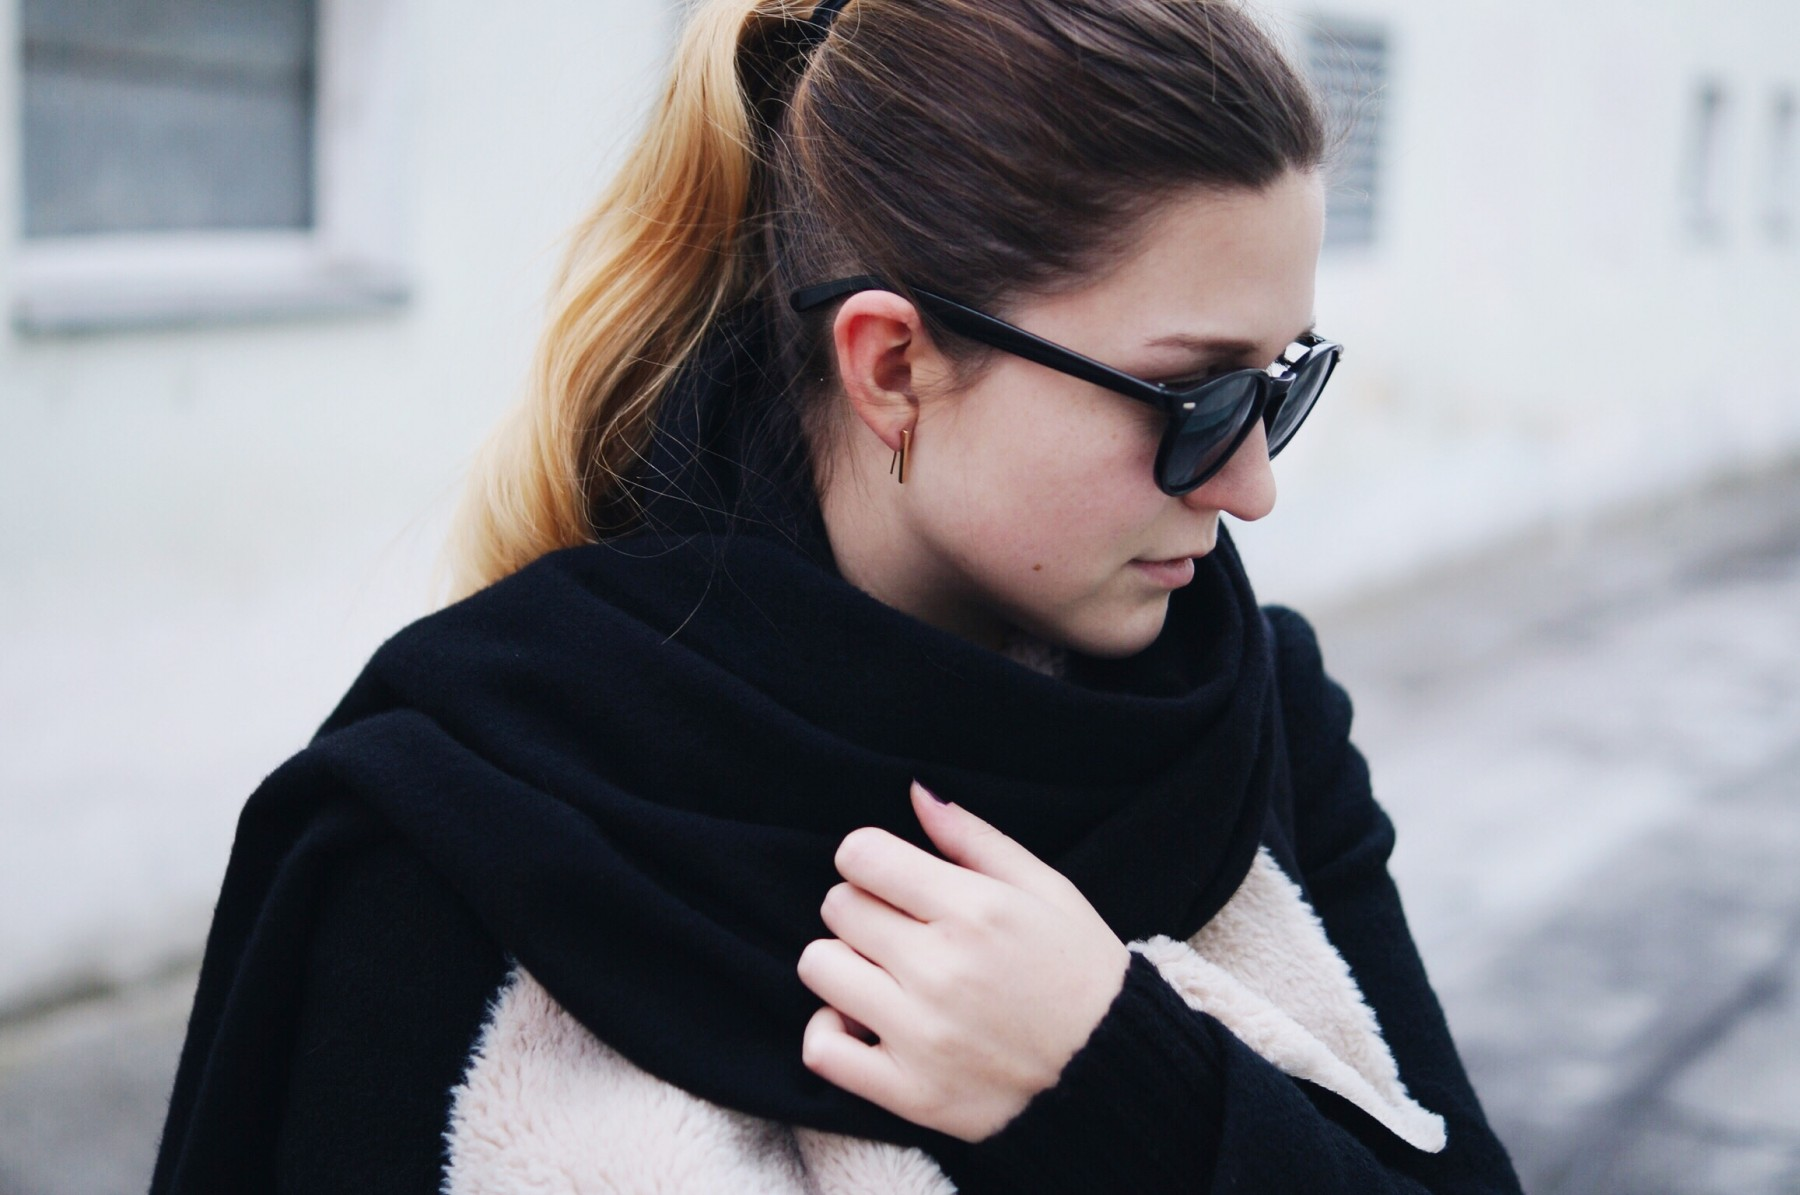 acne_studios_scarf_lambskin_jacket_winter_outfit8